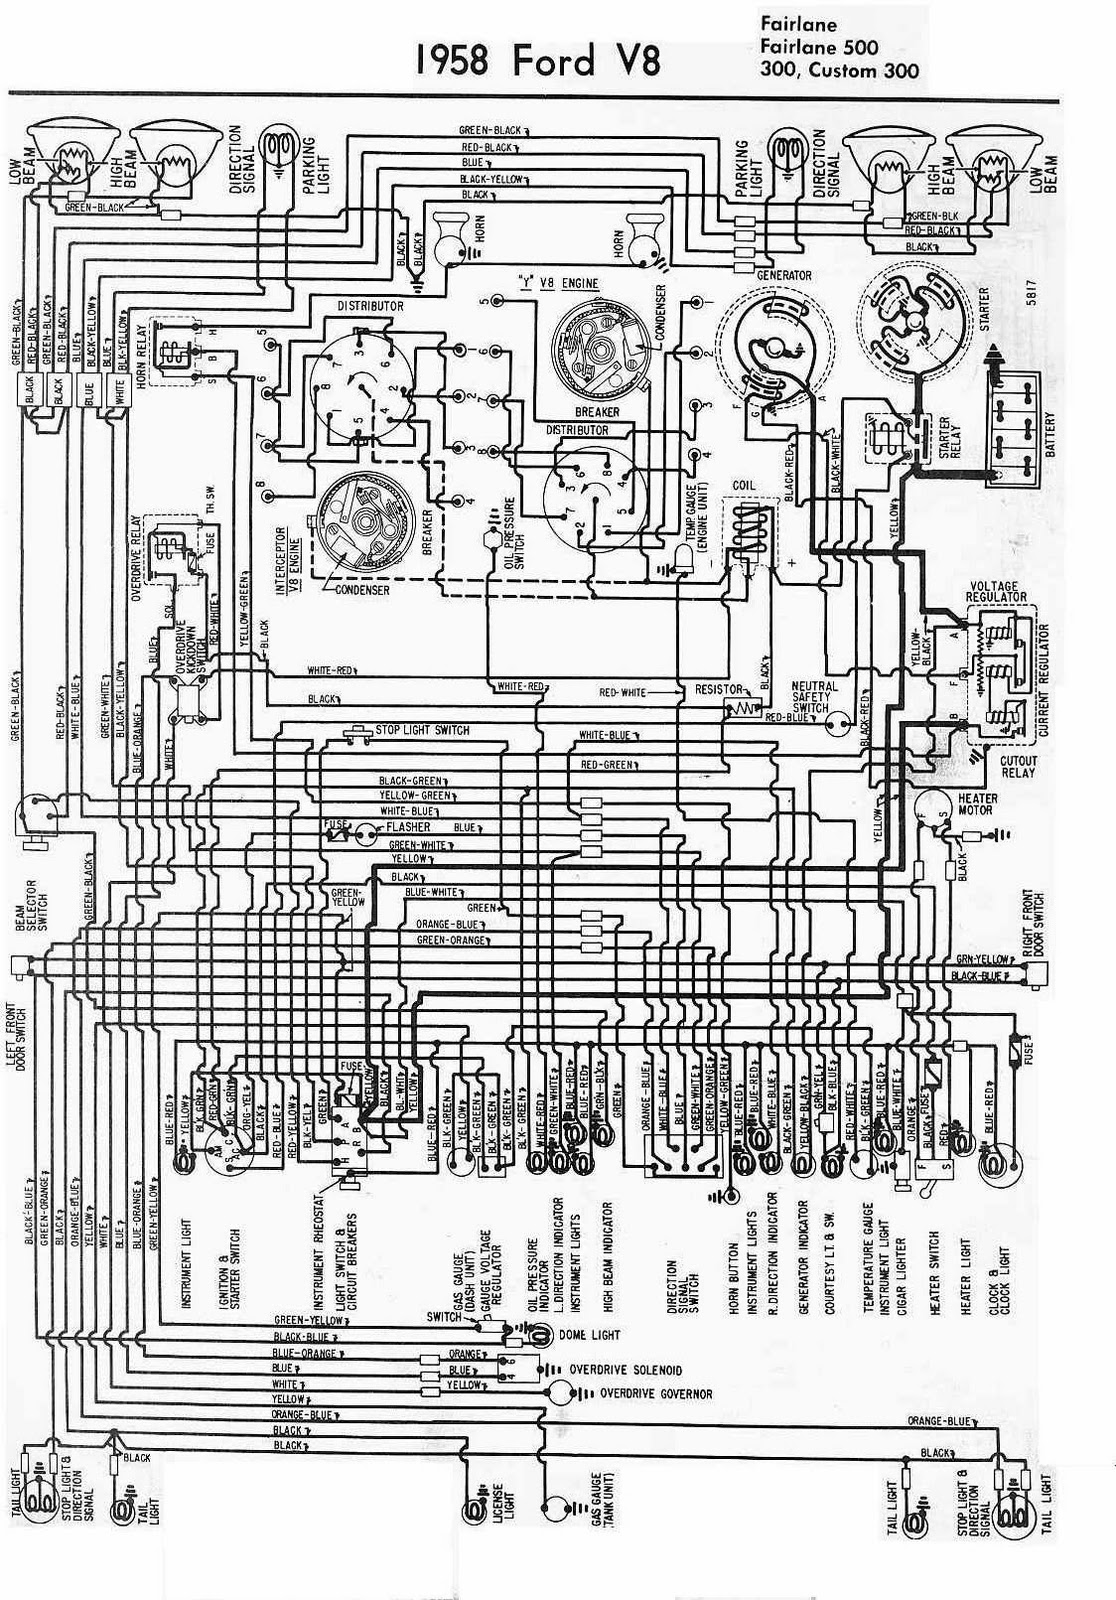 hight resolution of 1955 cadillac wiring diagram wiring diagrams konsult1955 cadillac vacuum diagram 1955 get free image about wiring